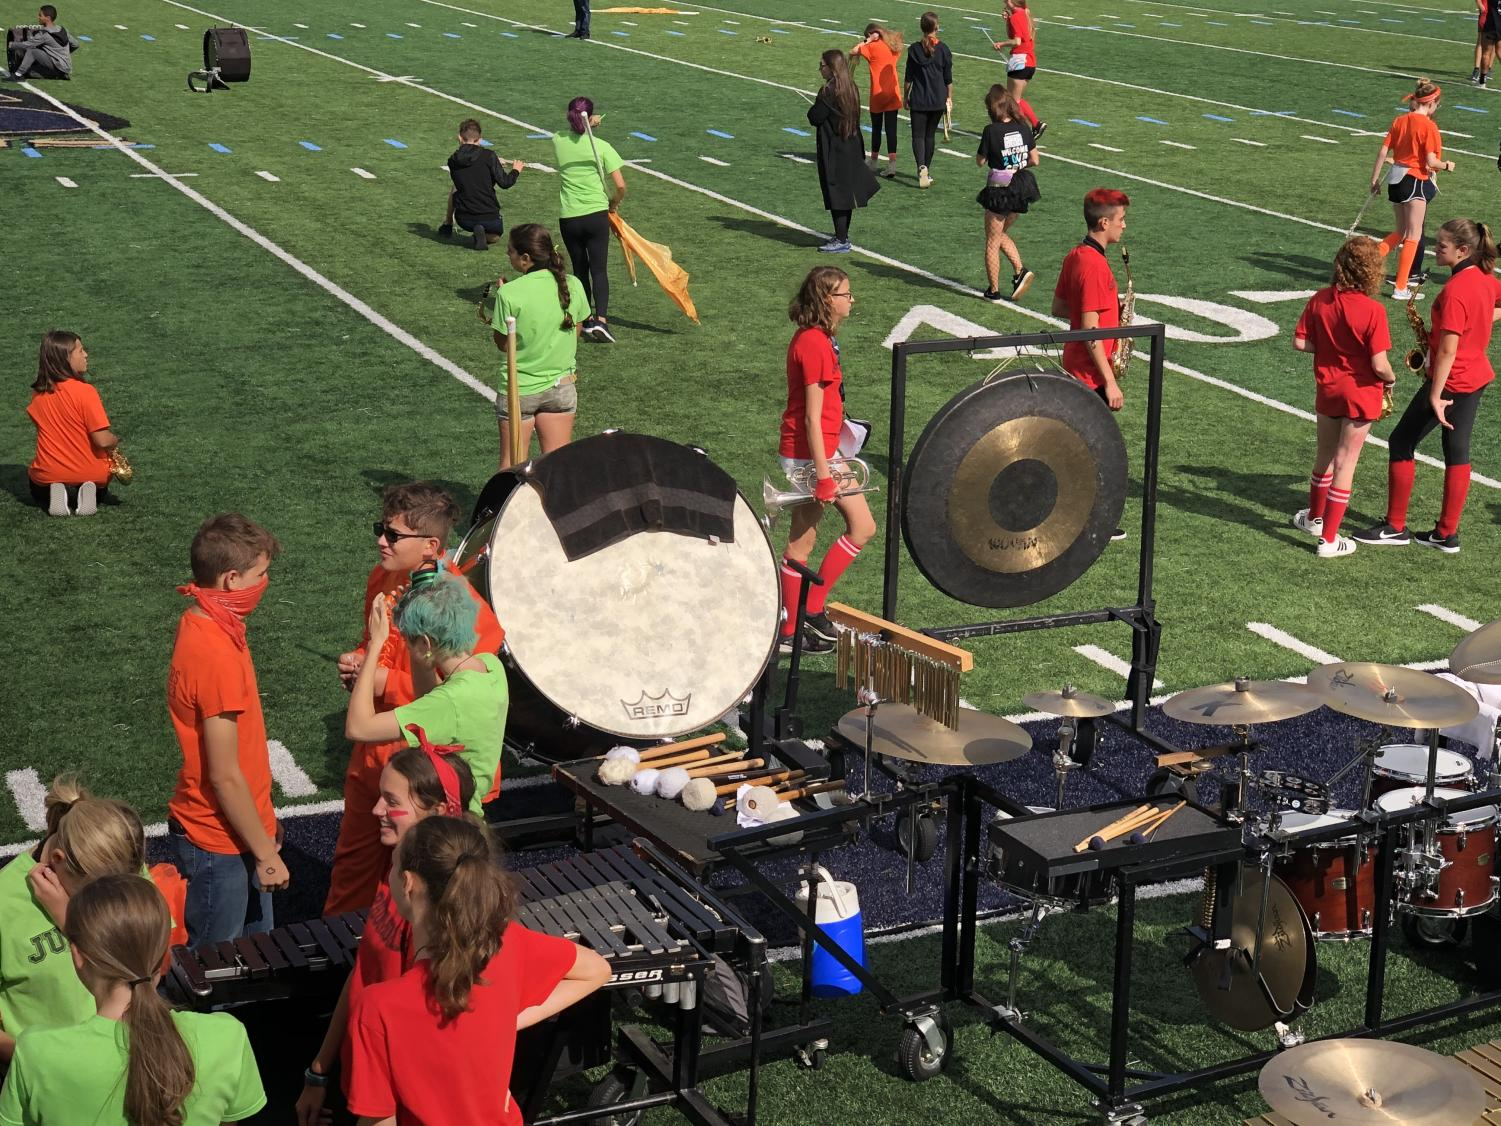 The homecoming football game marks the end of spirit week each year. Student Council members organize and set up many of the events and features that make it such a special day, including the halftime shows and band performances.